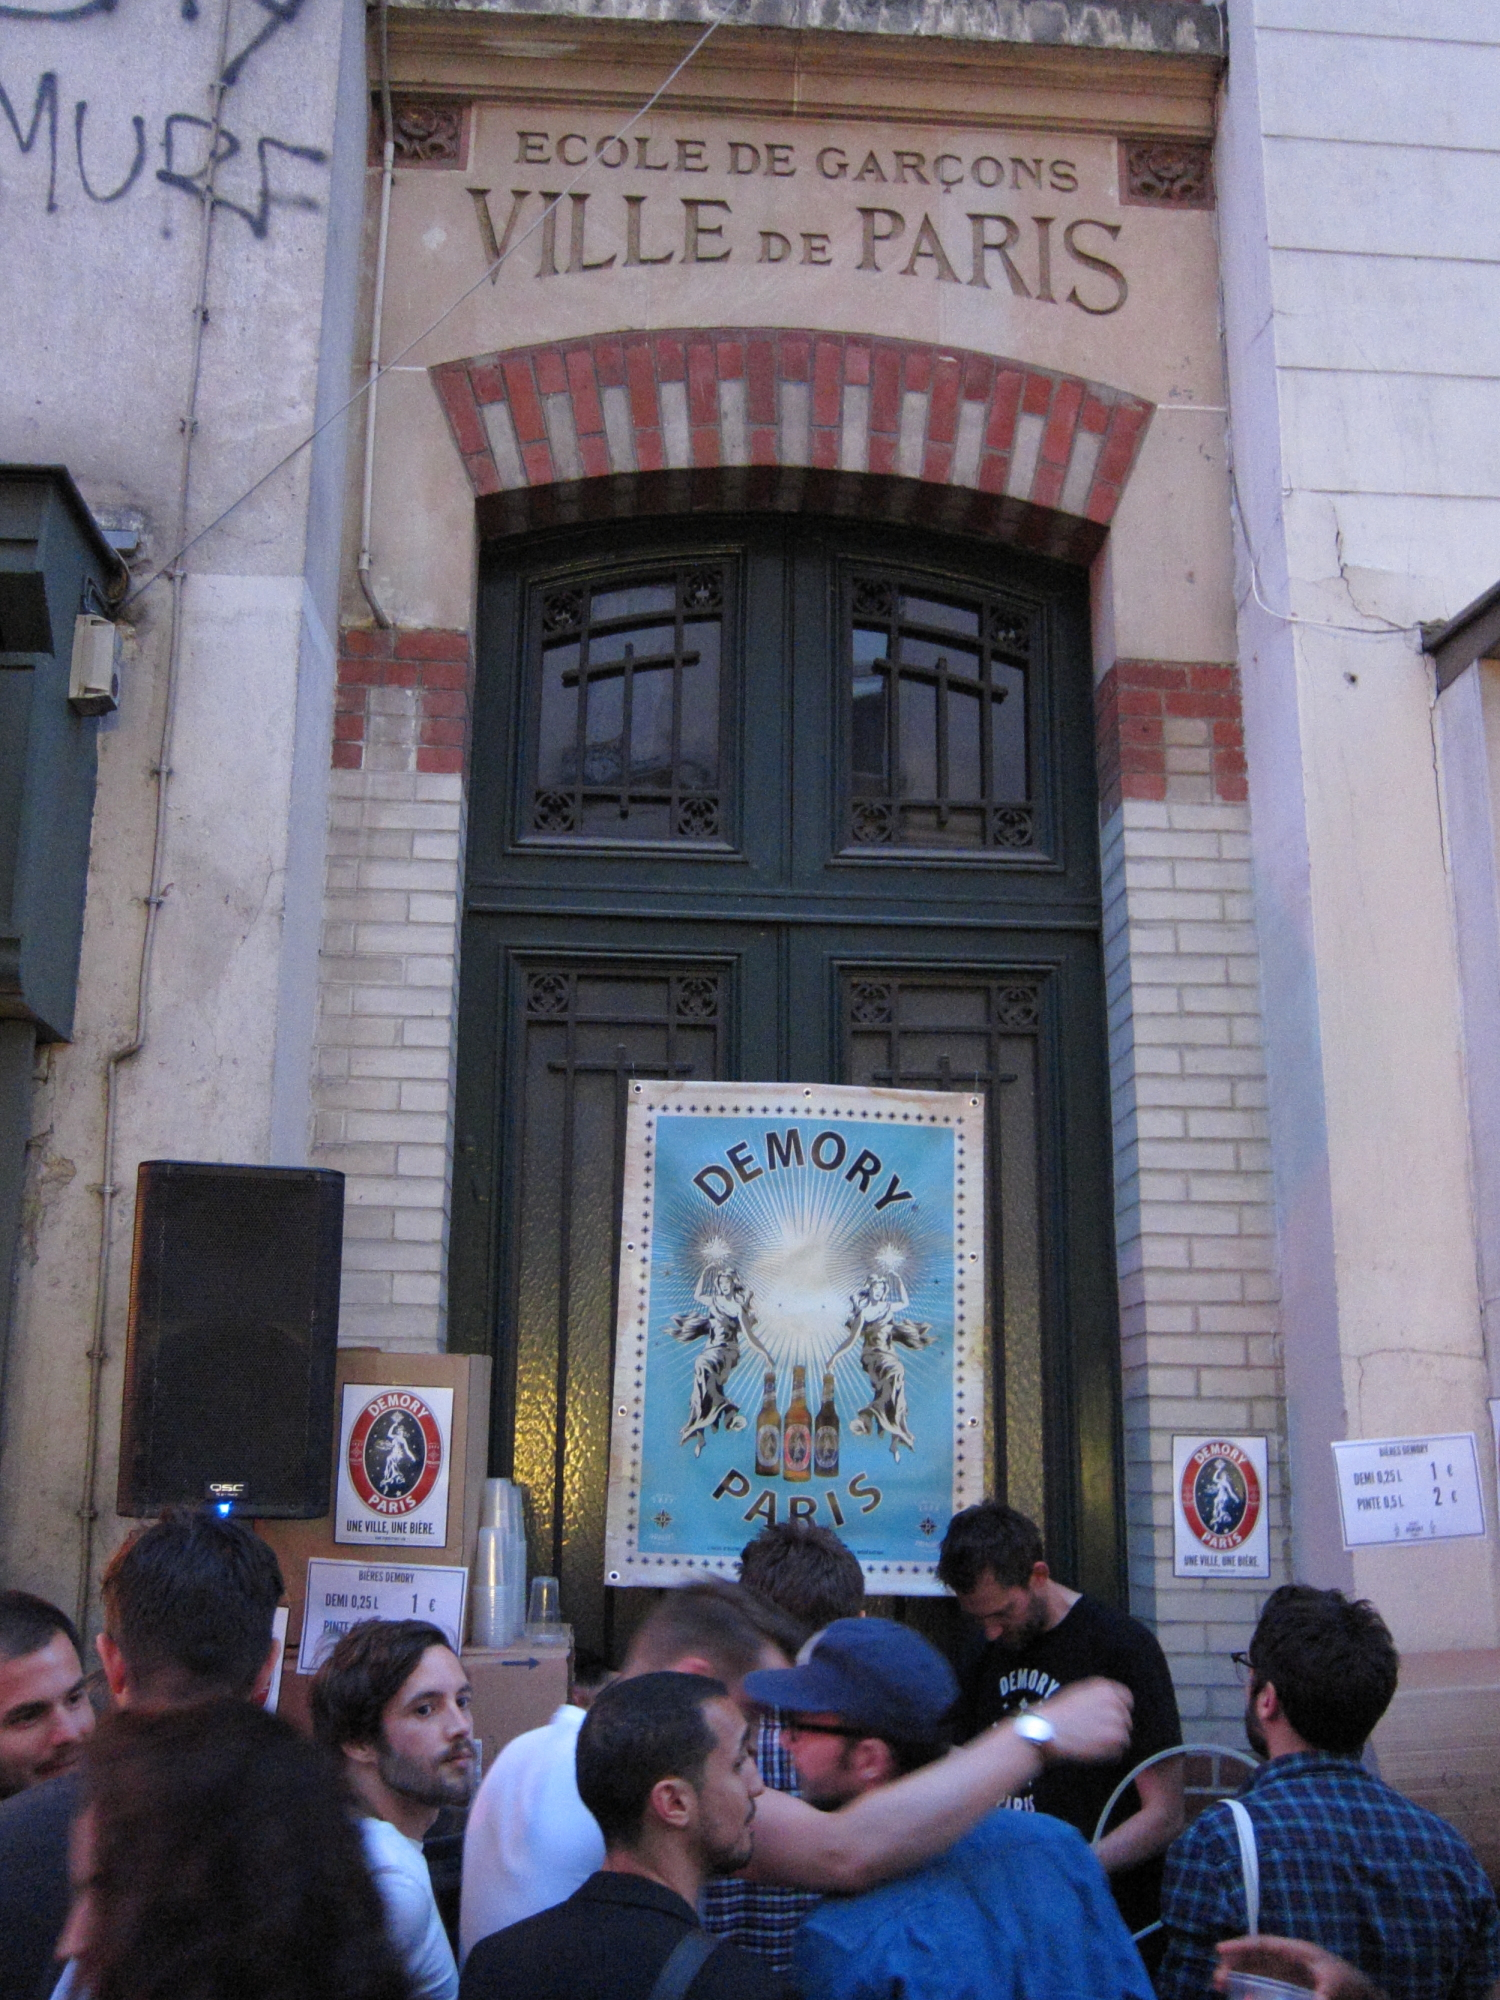 A pint of beer was 7 euros in the gay-bar area but I shopped around and bought my pint for 2 euros at this Ecole de Garçons (School for Boys).